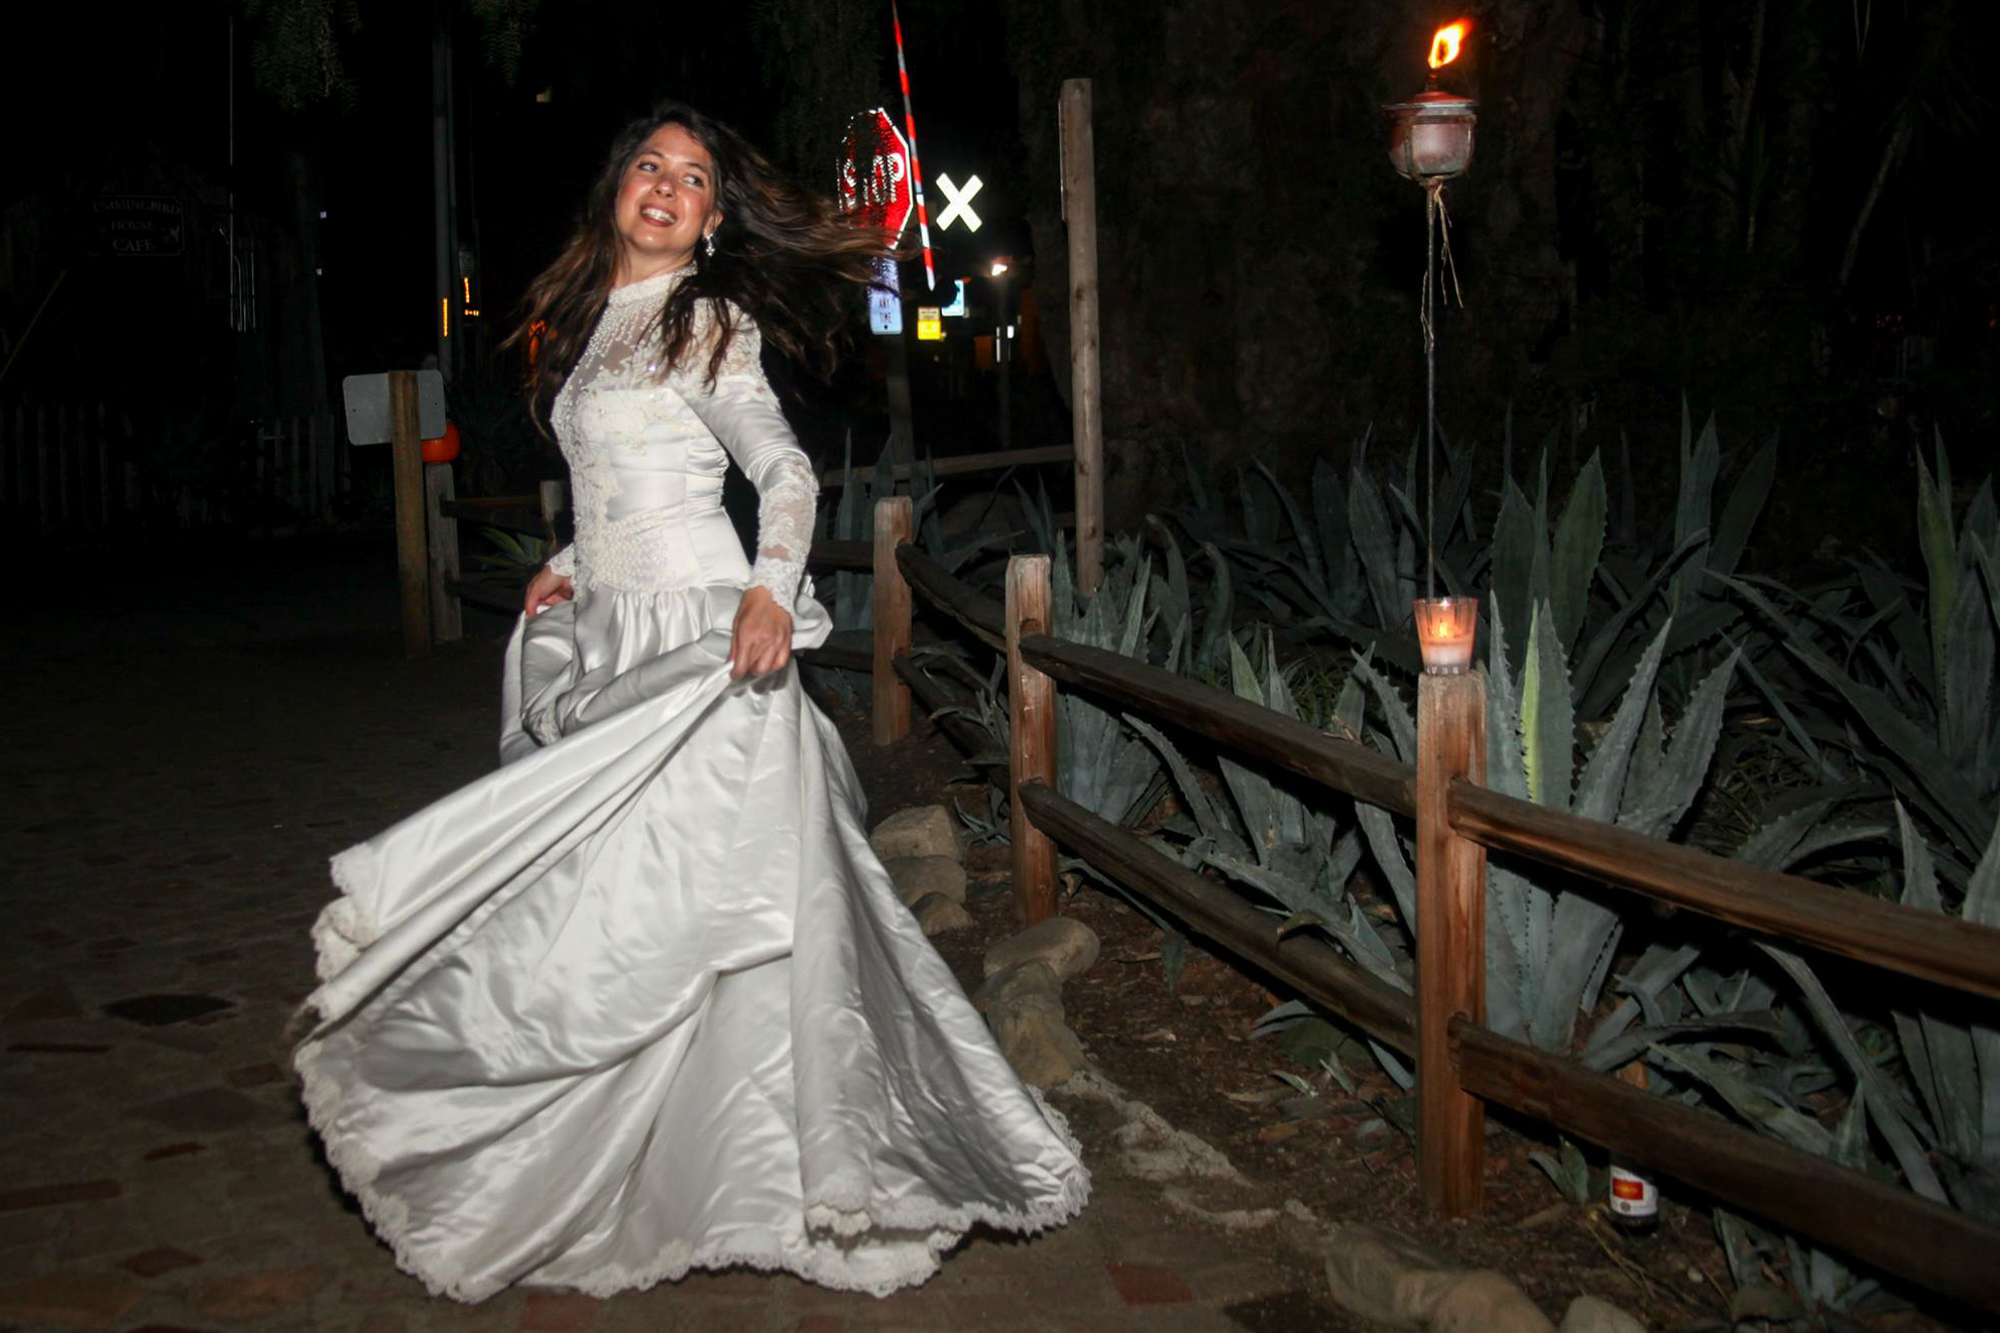 Monica Mukai, of San Juan Capistrano, dances through Los Rios Park as the White Lady, a friendly spirit who has been spotted in town during the 2017 Ghosts & Legends Tour. Photo: File.